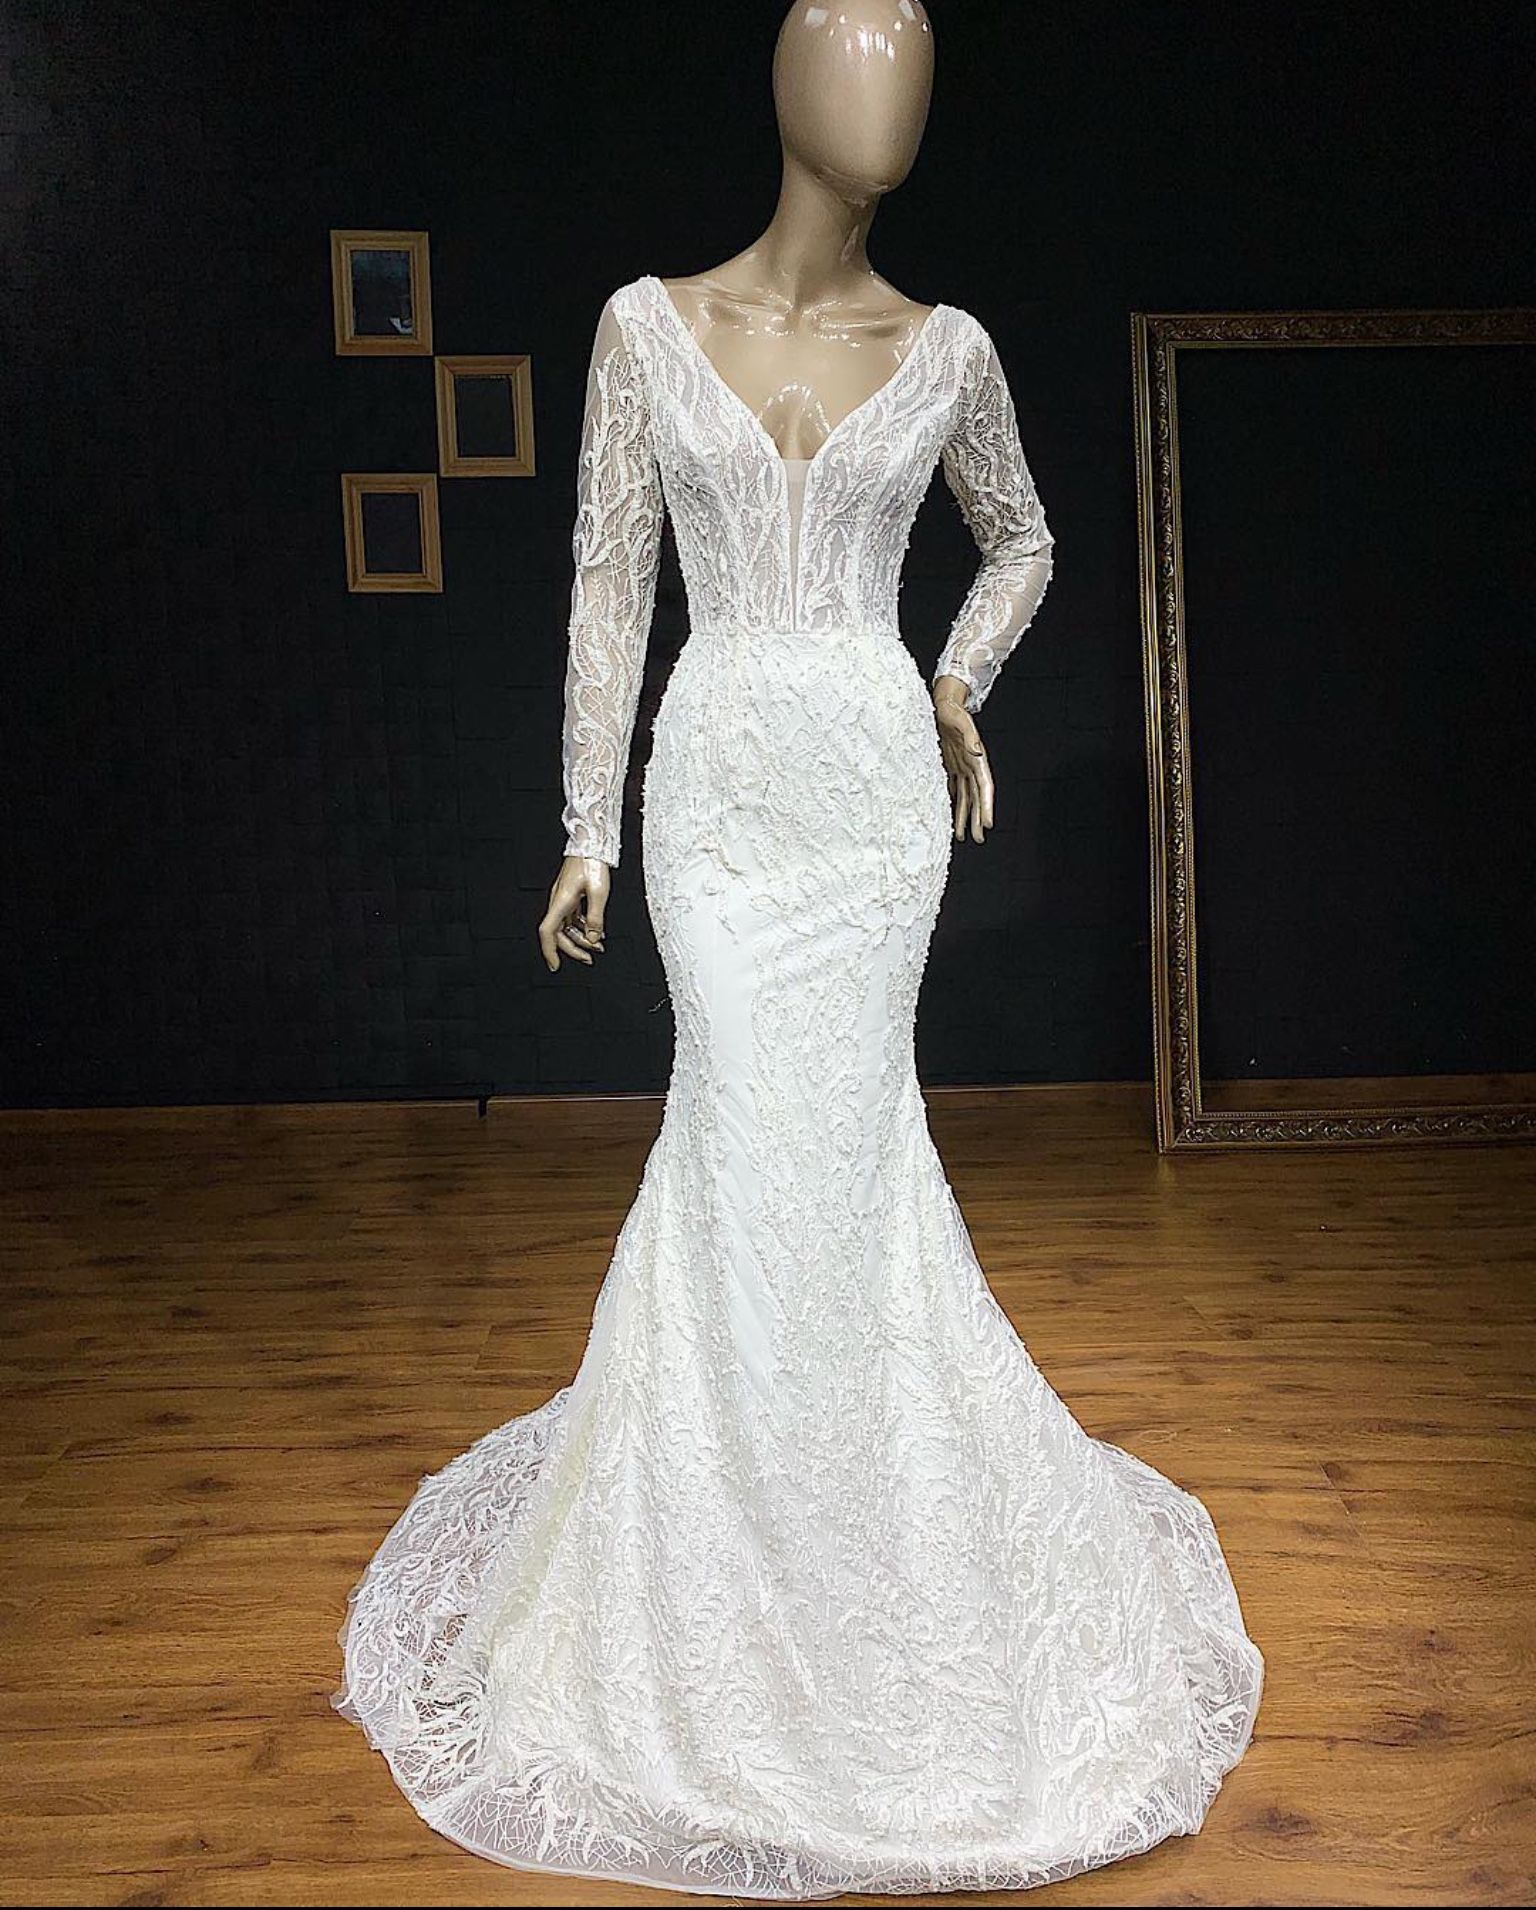 Simple Wedding Dress For Godmother: Pin By Celeste Caprice Blackwell On Inspiration 2018